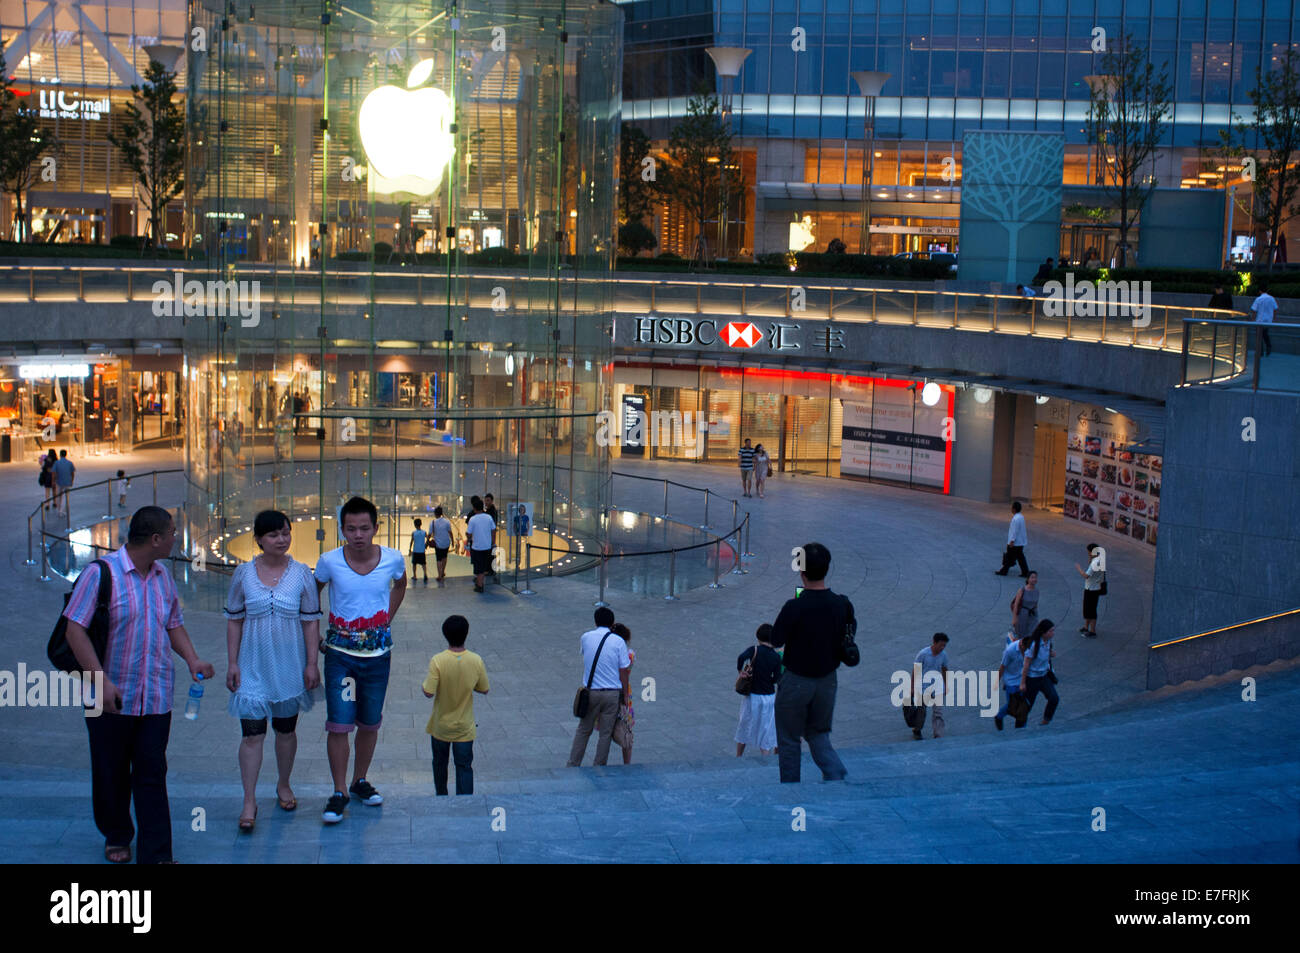 Apple computer store in Lujiazui financial district, in Pudong, in Shanghai, China. View of large modern Apple store Stock Photo